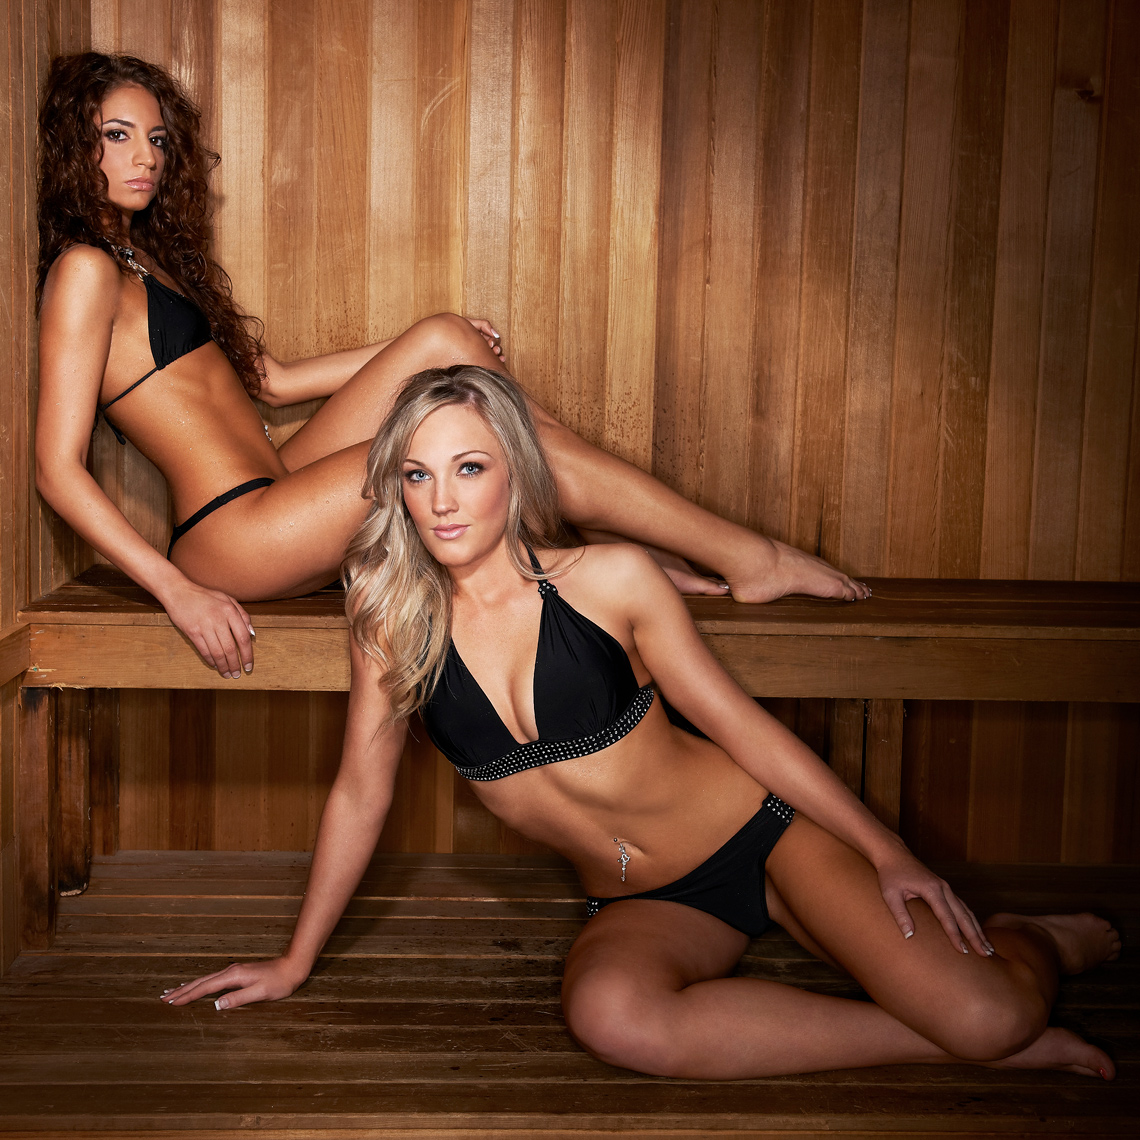 2017-Vancouver-SwimsuitandCalendar-Photographer-ErichSaide-BCLions-Cheerleader-Calender-Sauna